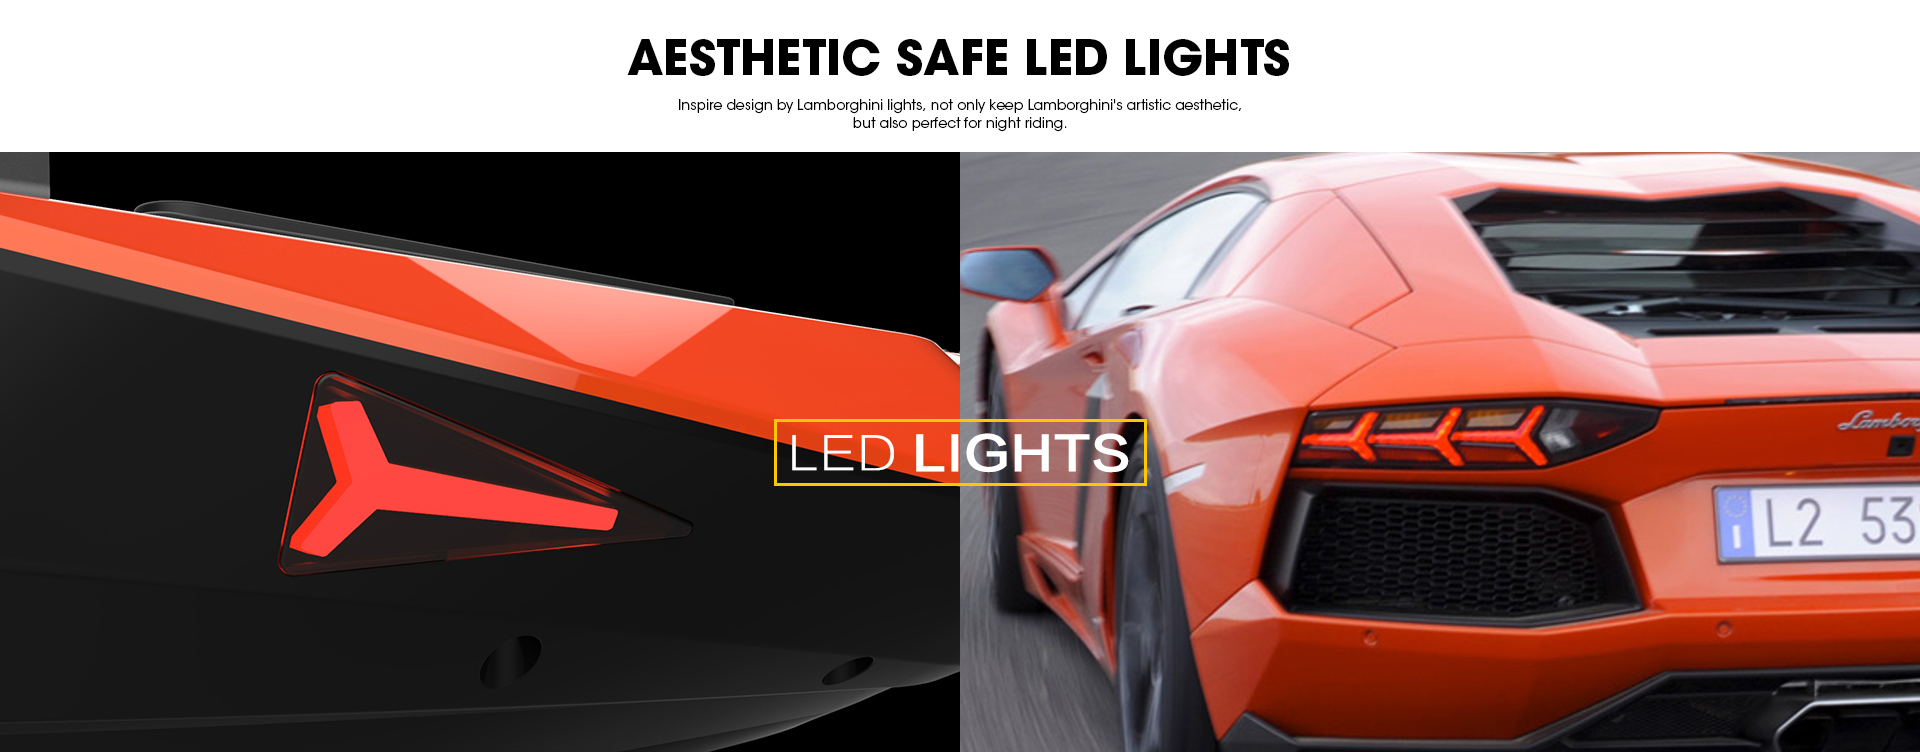 Red Lamborghini Hoverboard 8.5 inch Offical Automobili Lamborghini Authorized Bluetooth Hoverboard -  Aesthetic Safe LED Lights